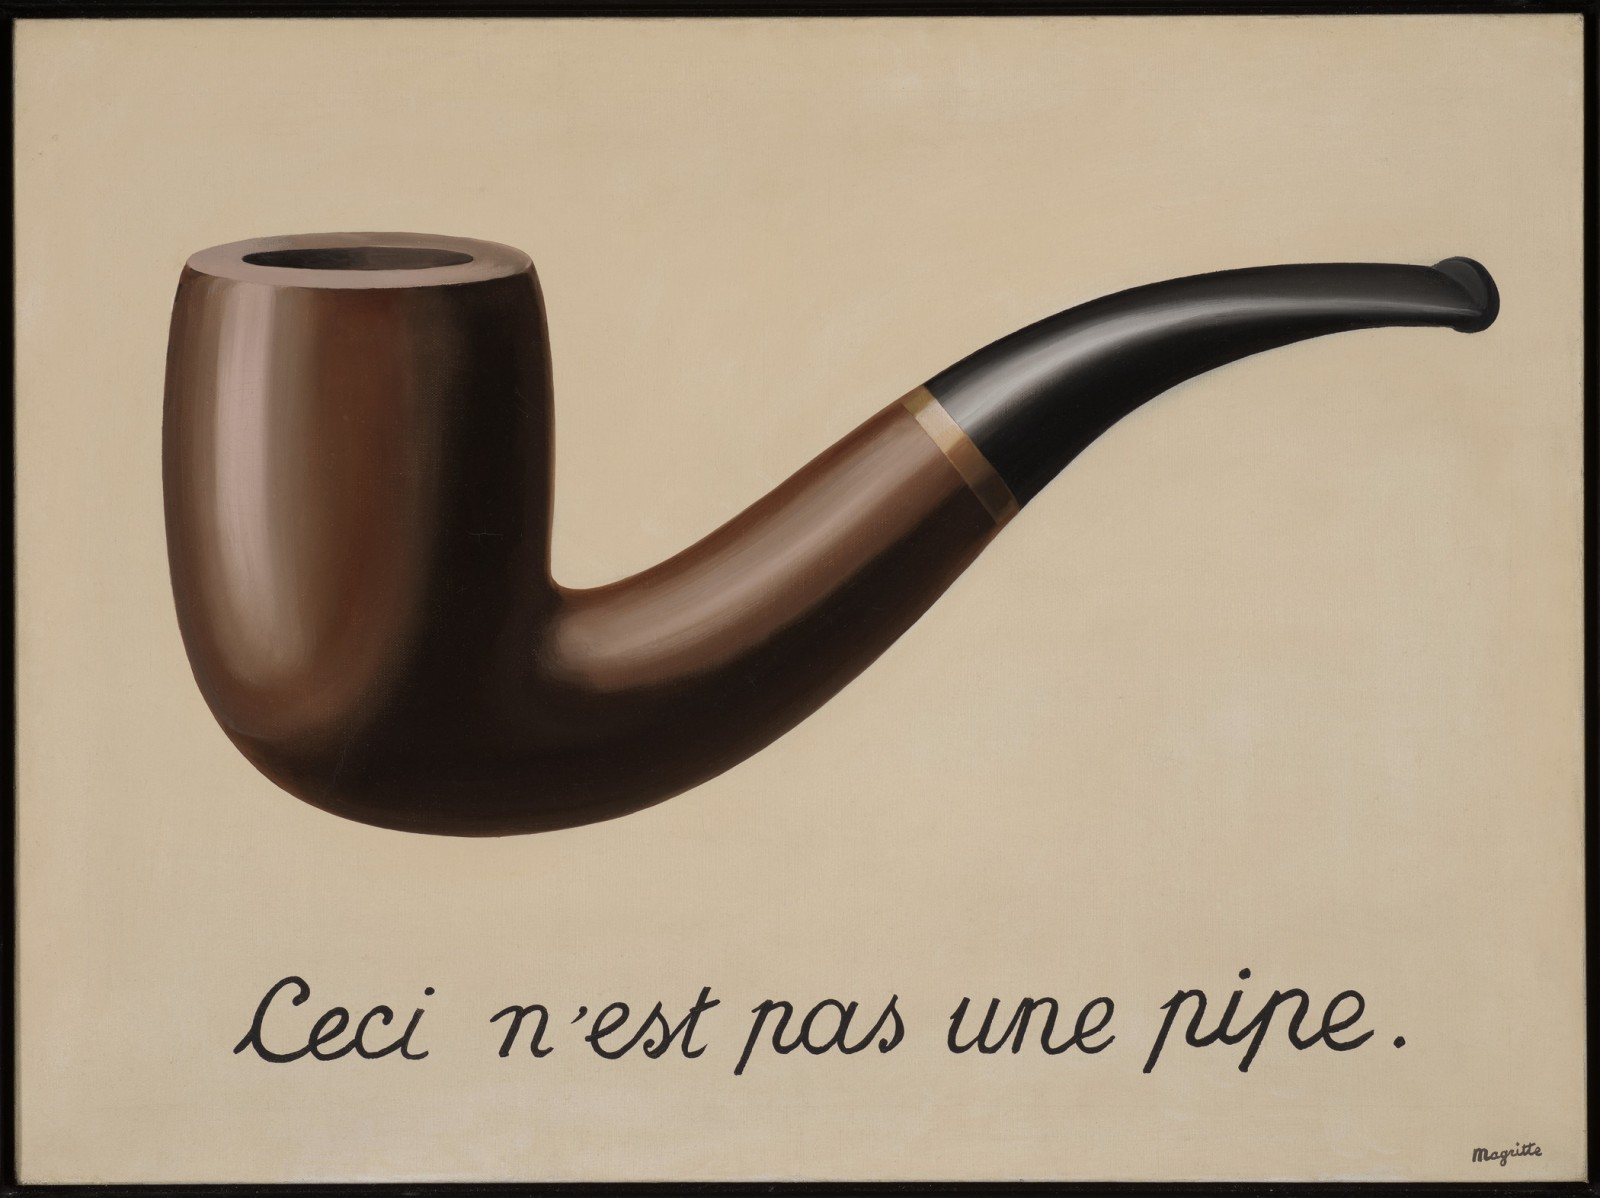 Image: René Magritte, The Treachery of Images (This is Not a Pipe), 1929